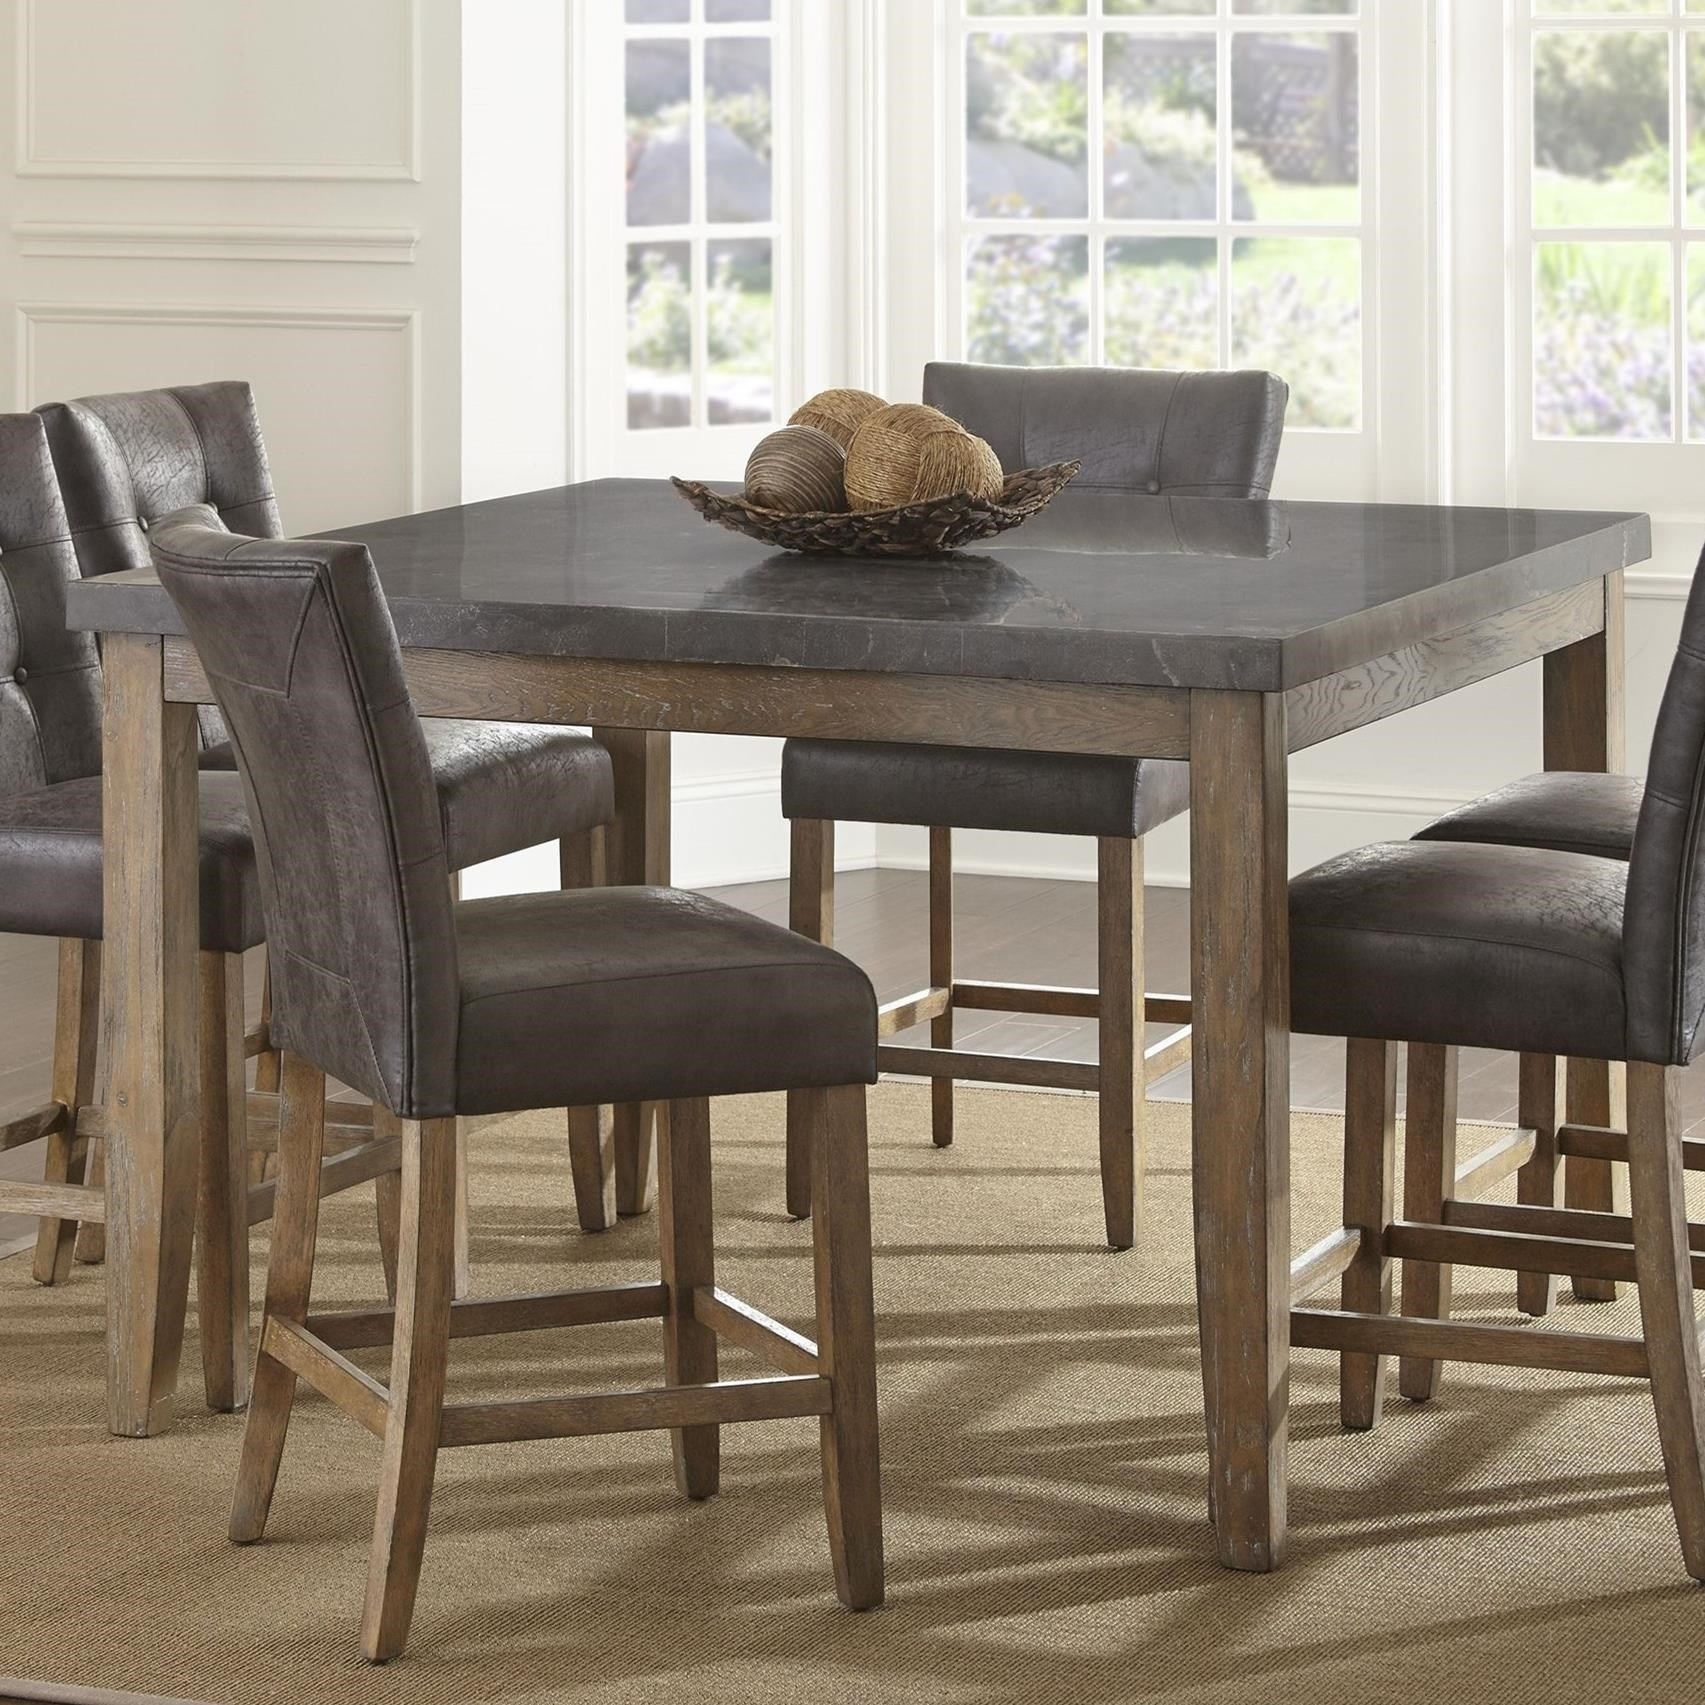 steve silver debby transitional square counter height dining table with bluestone top colder s